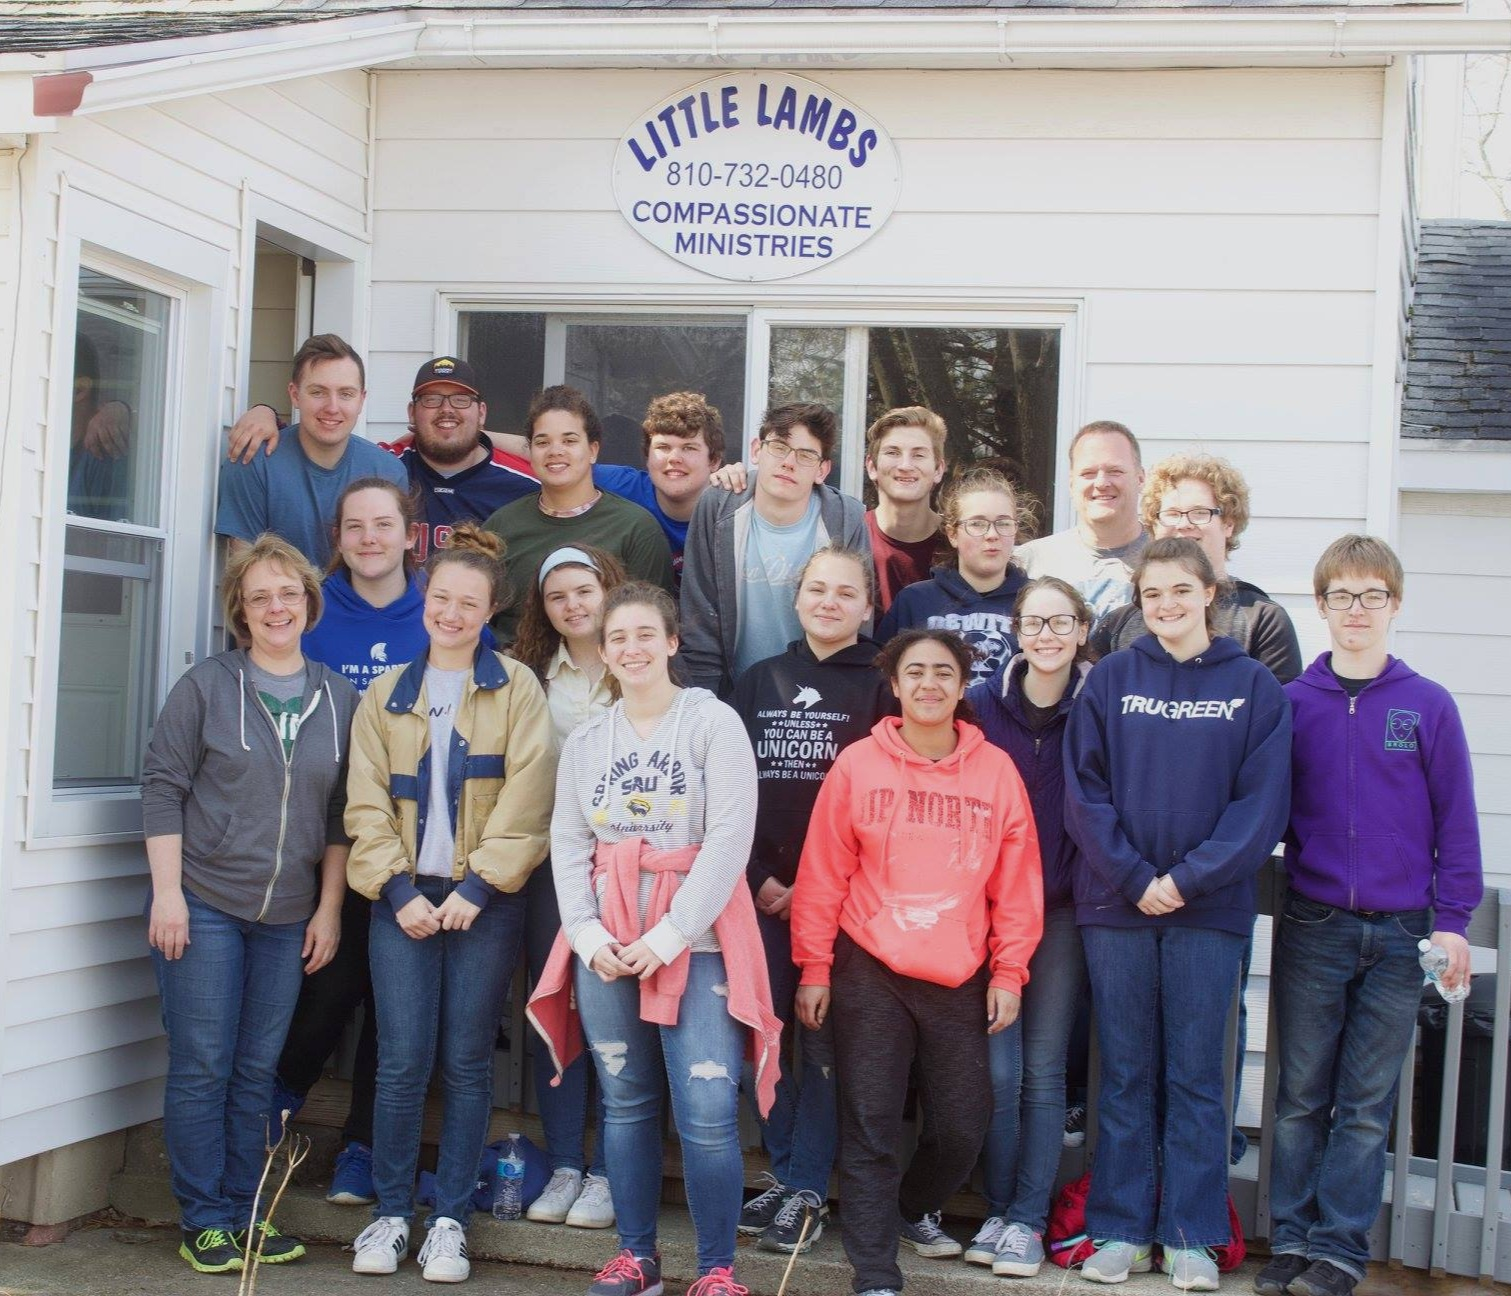 Groups who volunteer are an important part of our family. A perfect setting for a youth group to spend a day or a week!